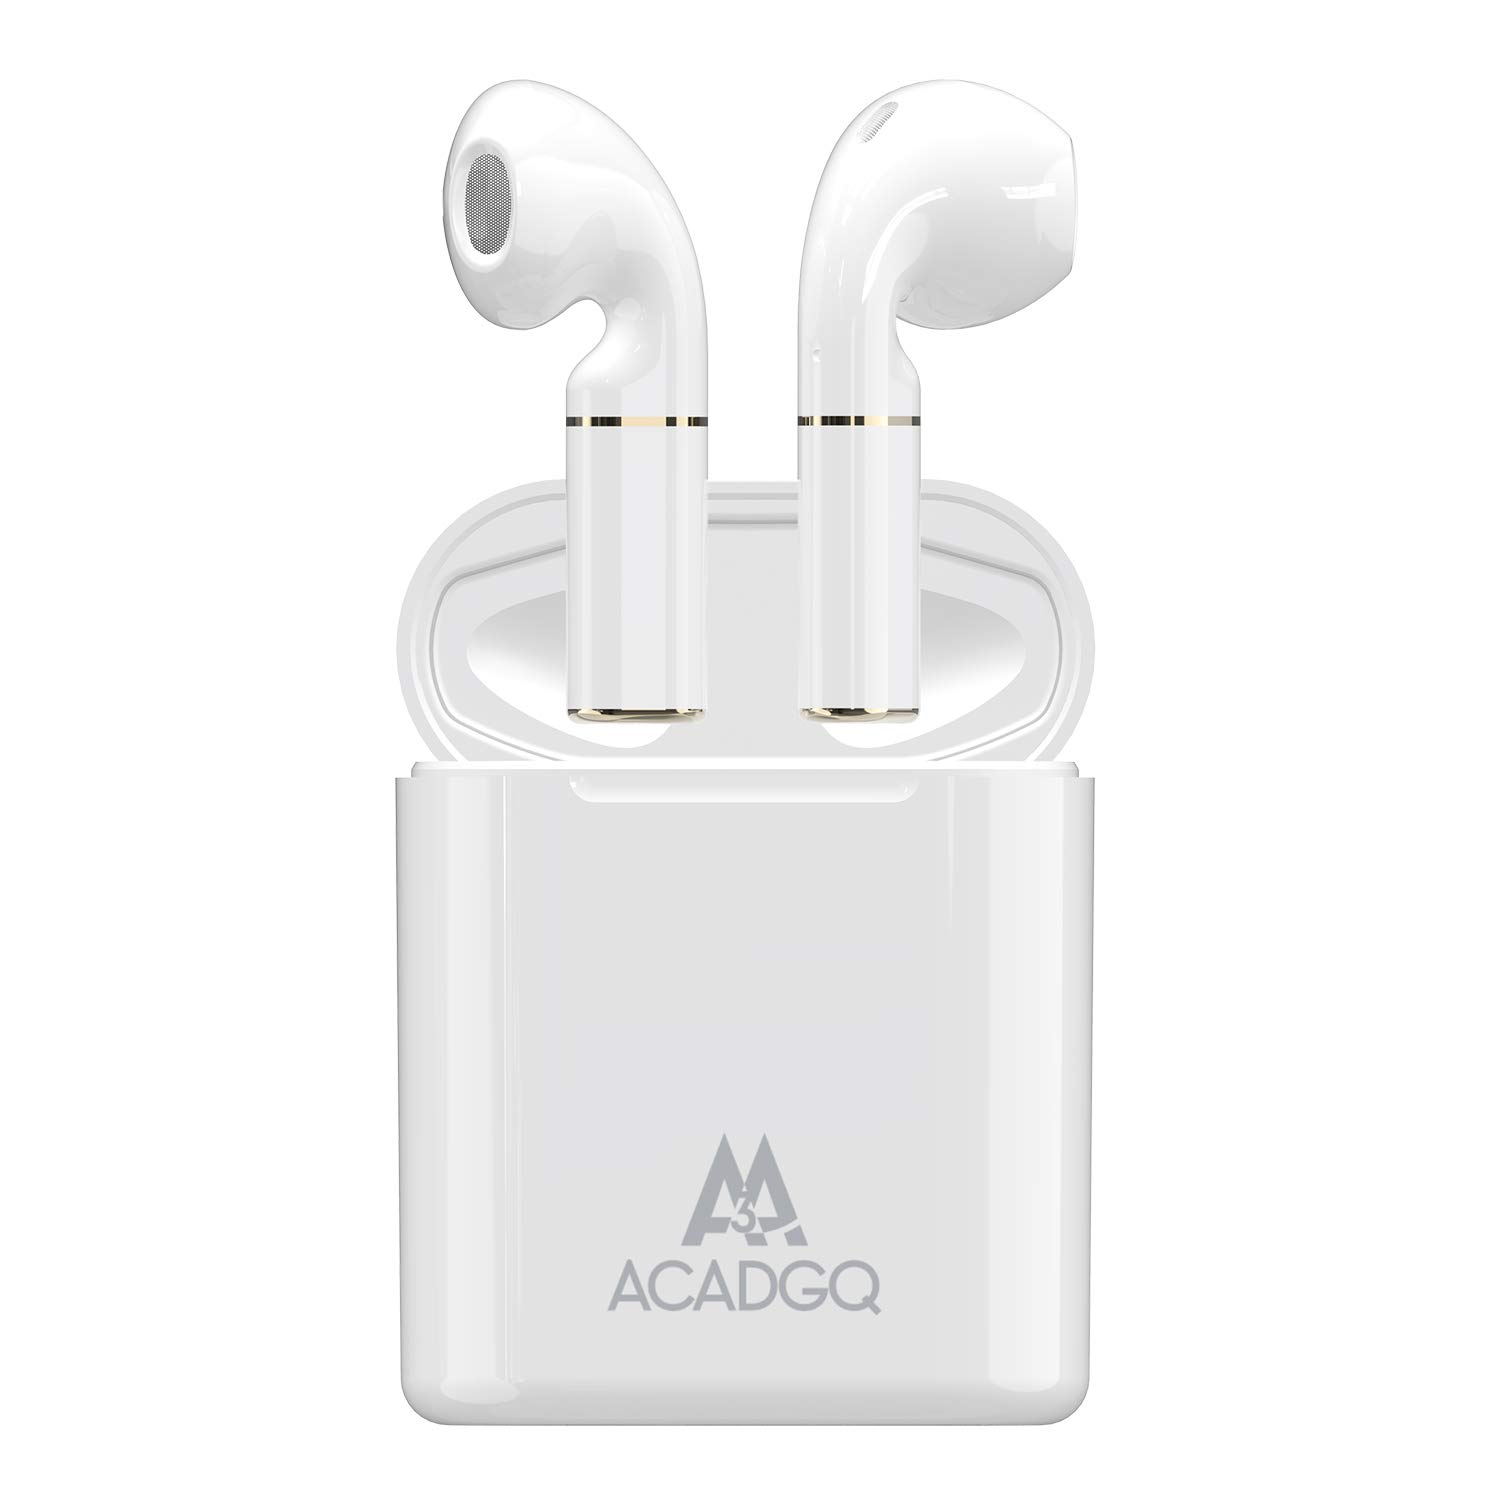 Bluetooth 5.0 Earbuds, ACADGQ Wireless Headphones Stereo Sports Earphone in-Ear Earphones for Running with Built-in Mic(White)